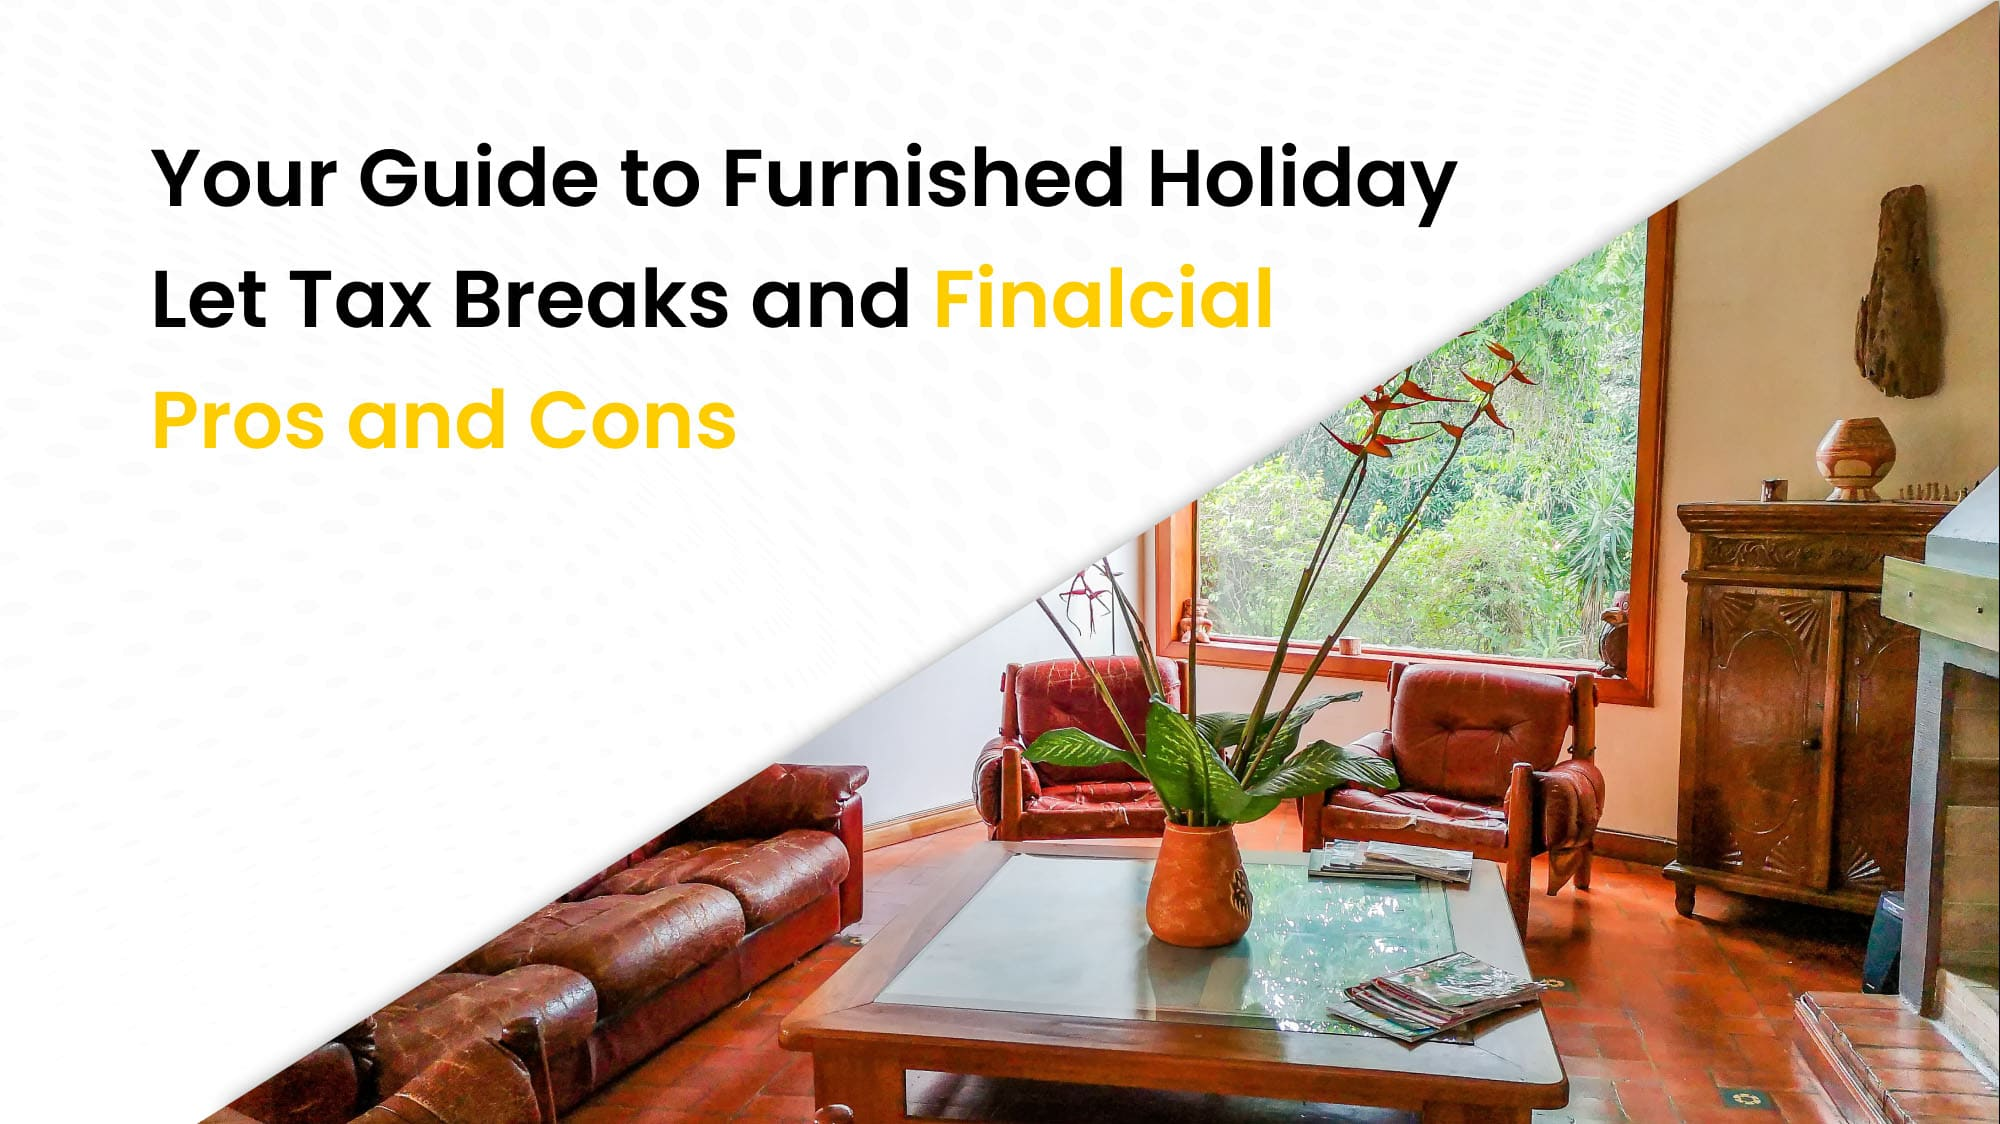 Your guide to furnished holiday let tax breaks and financial pros and cons